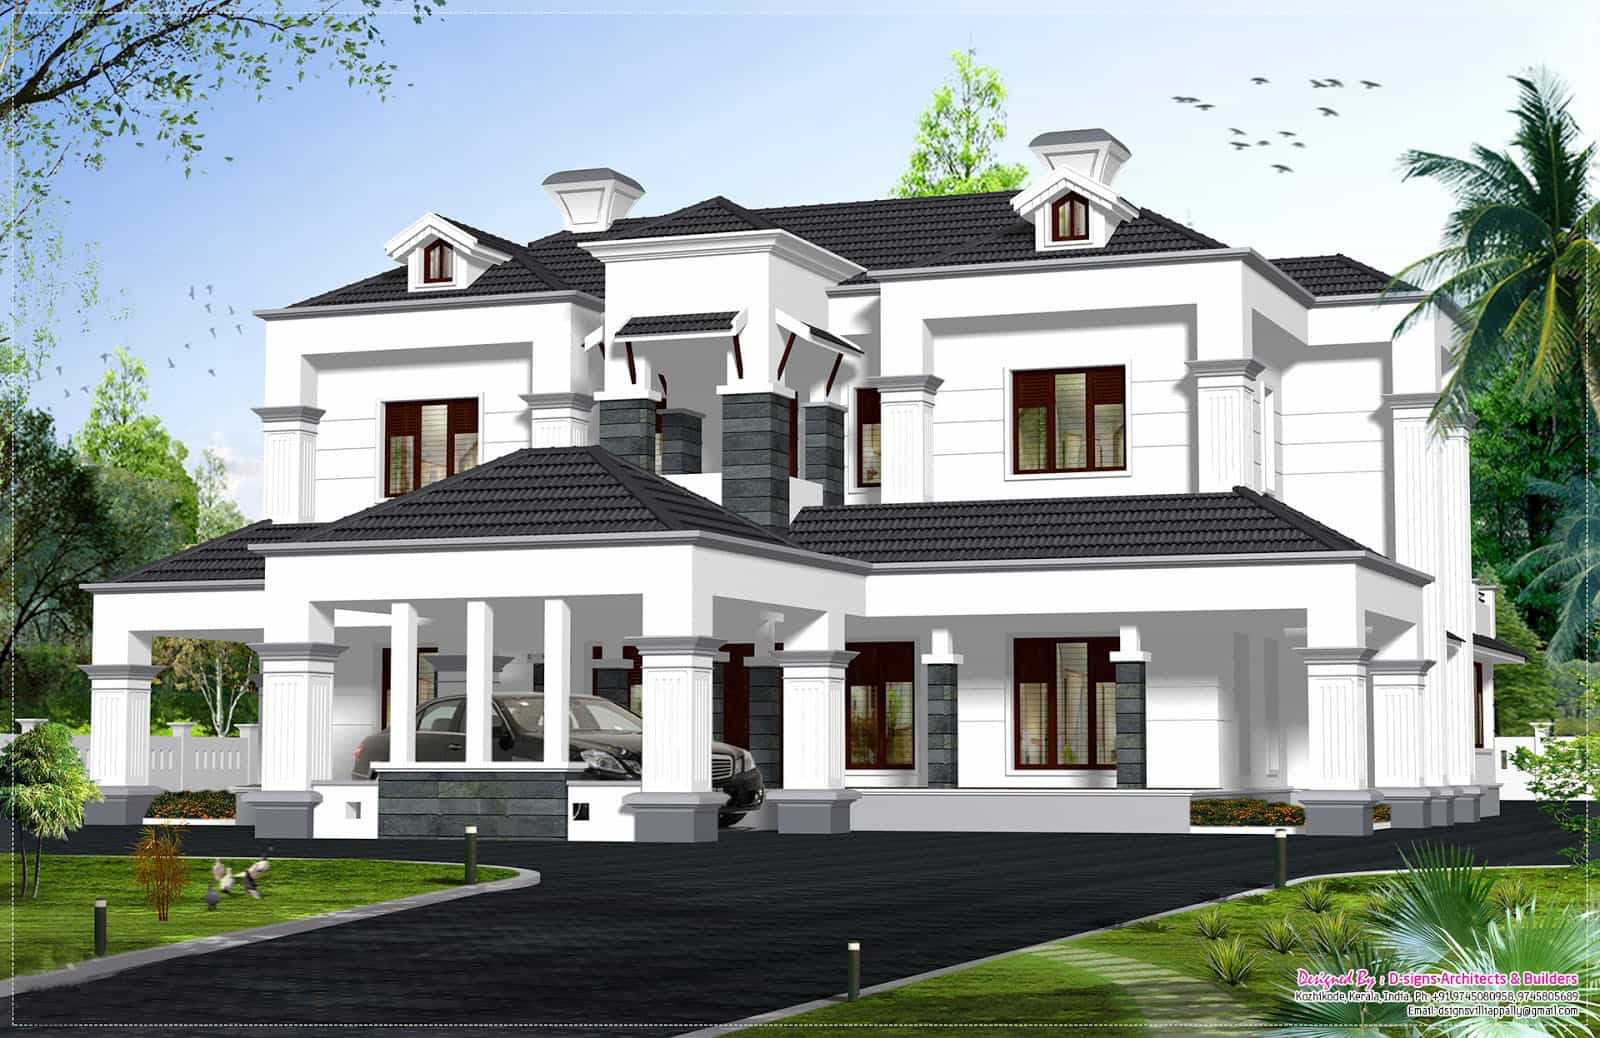 Kerala house plans keralahouseplanner for Kerala house models photos